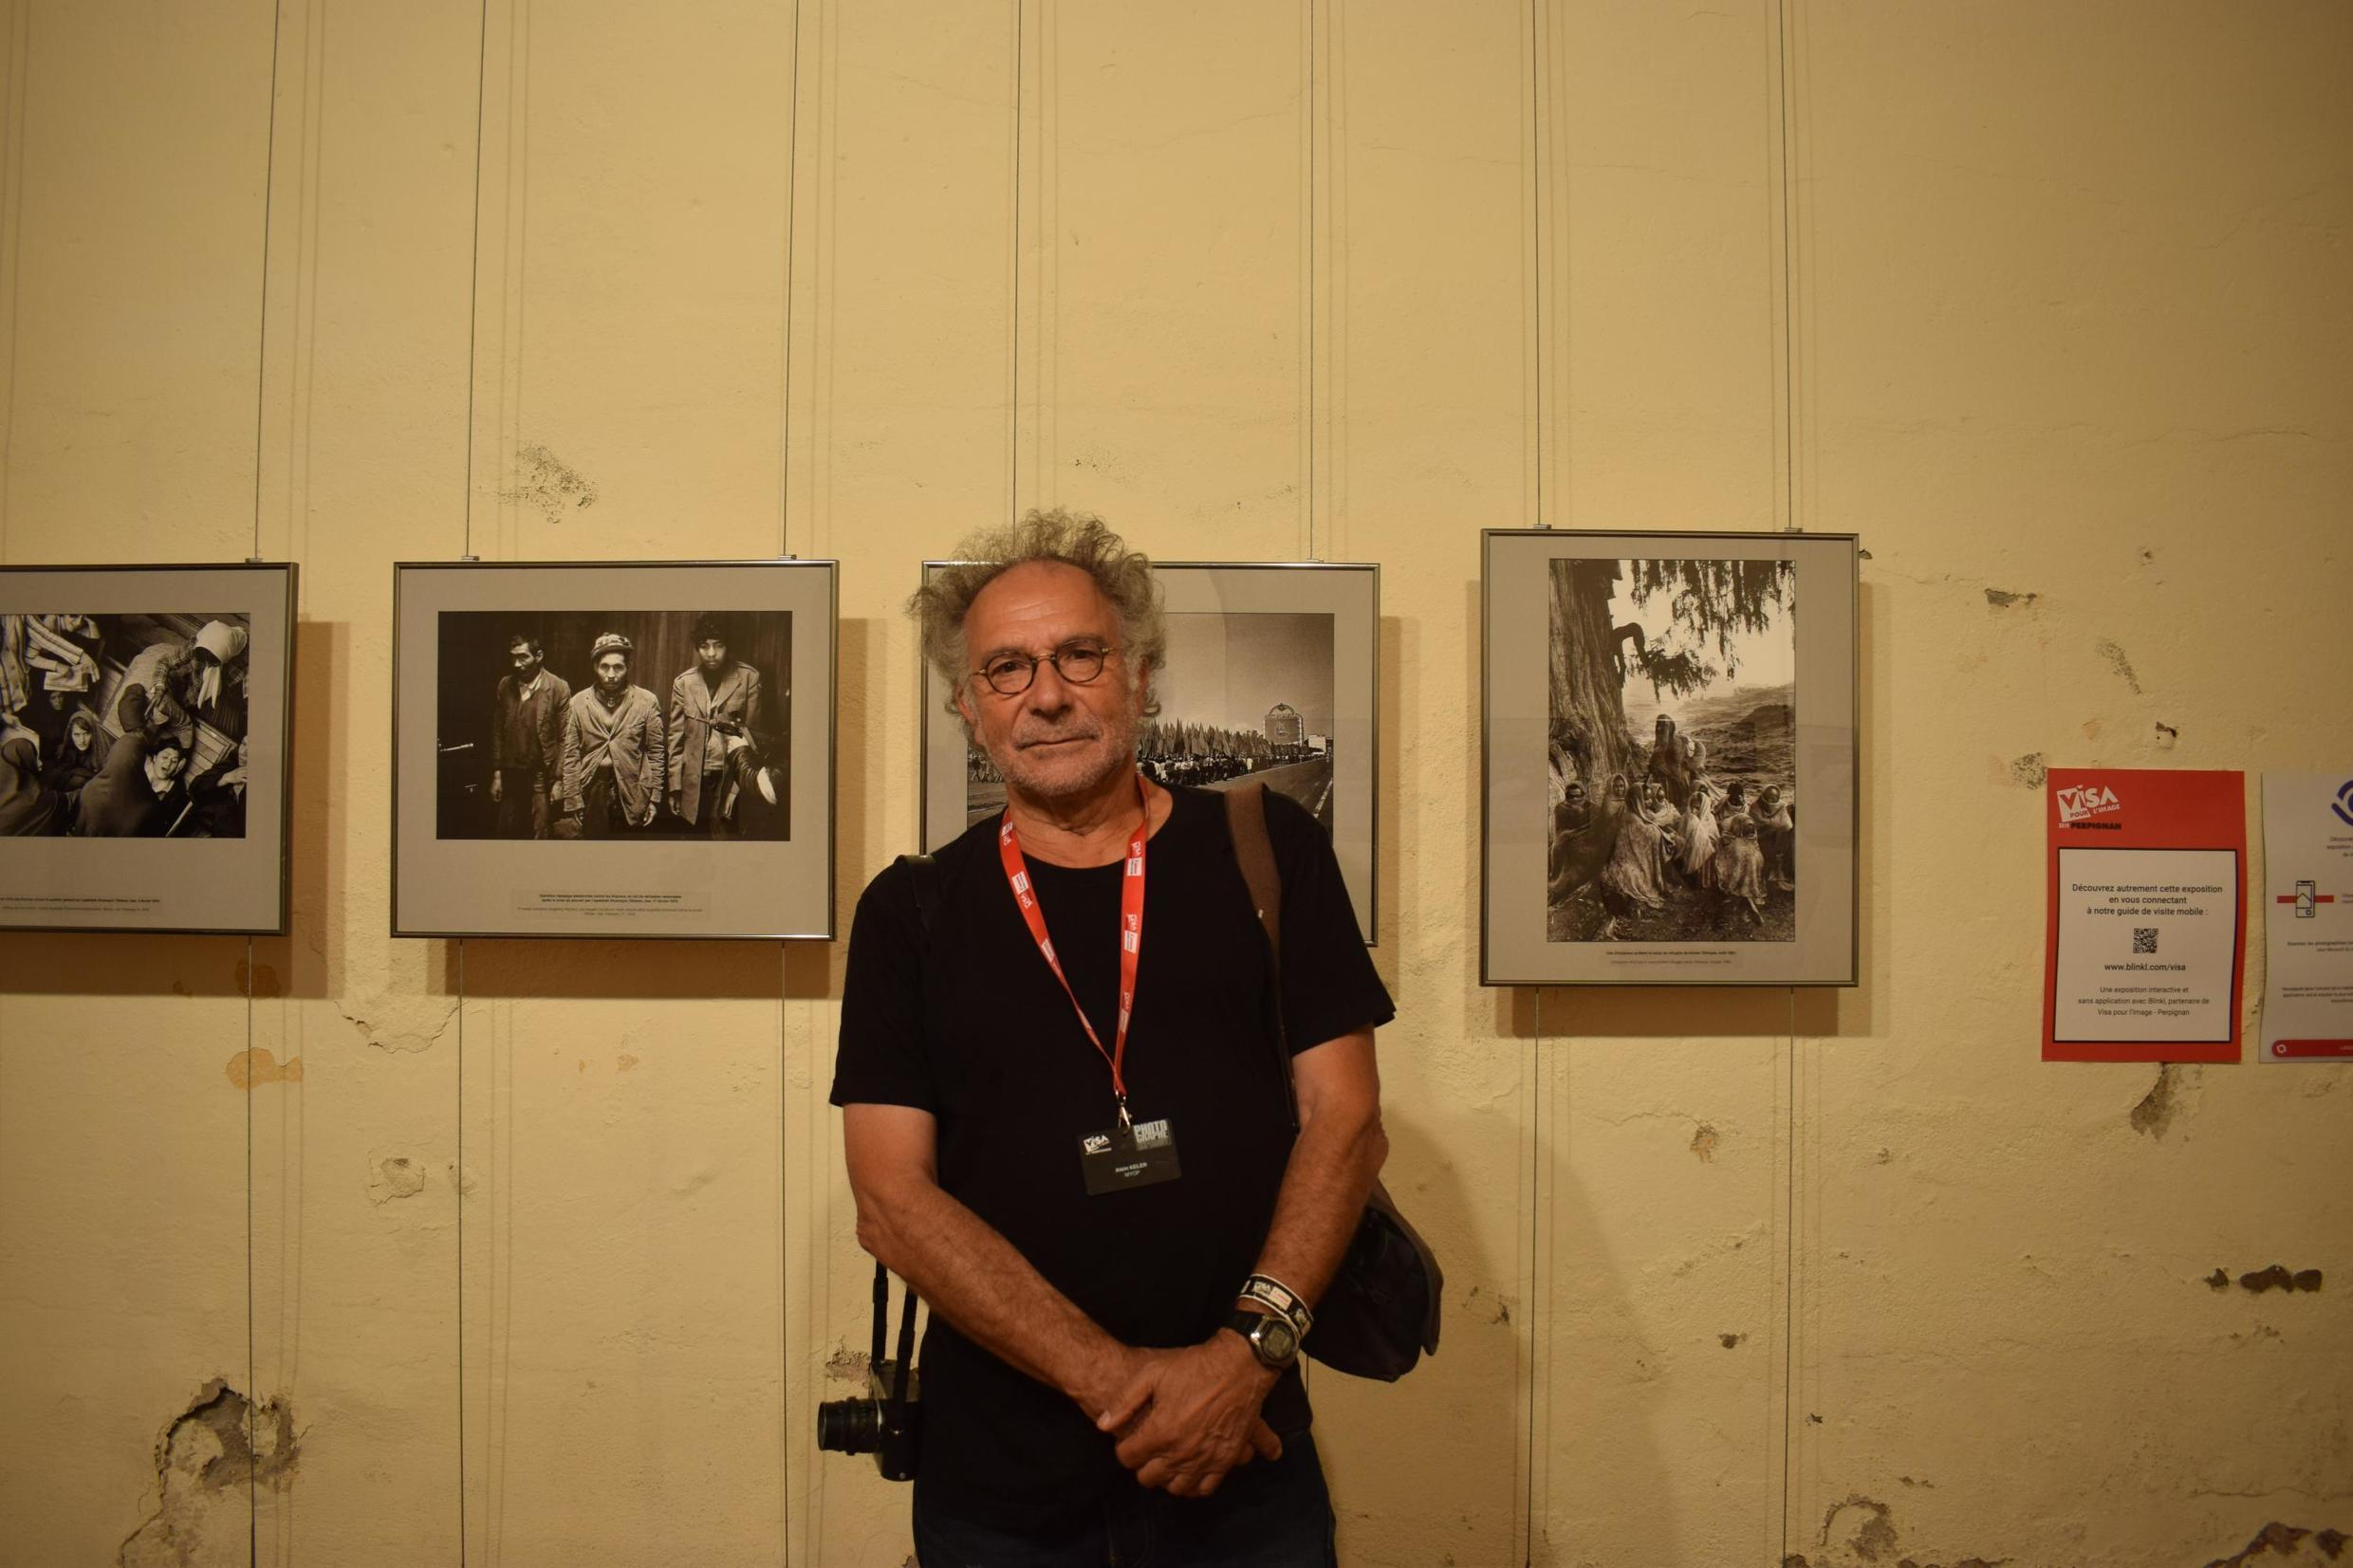 Alain Keler has his photography from years of travel on display at the Visa Pour L'image festival in Perpignan, September 5, 2019